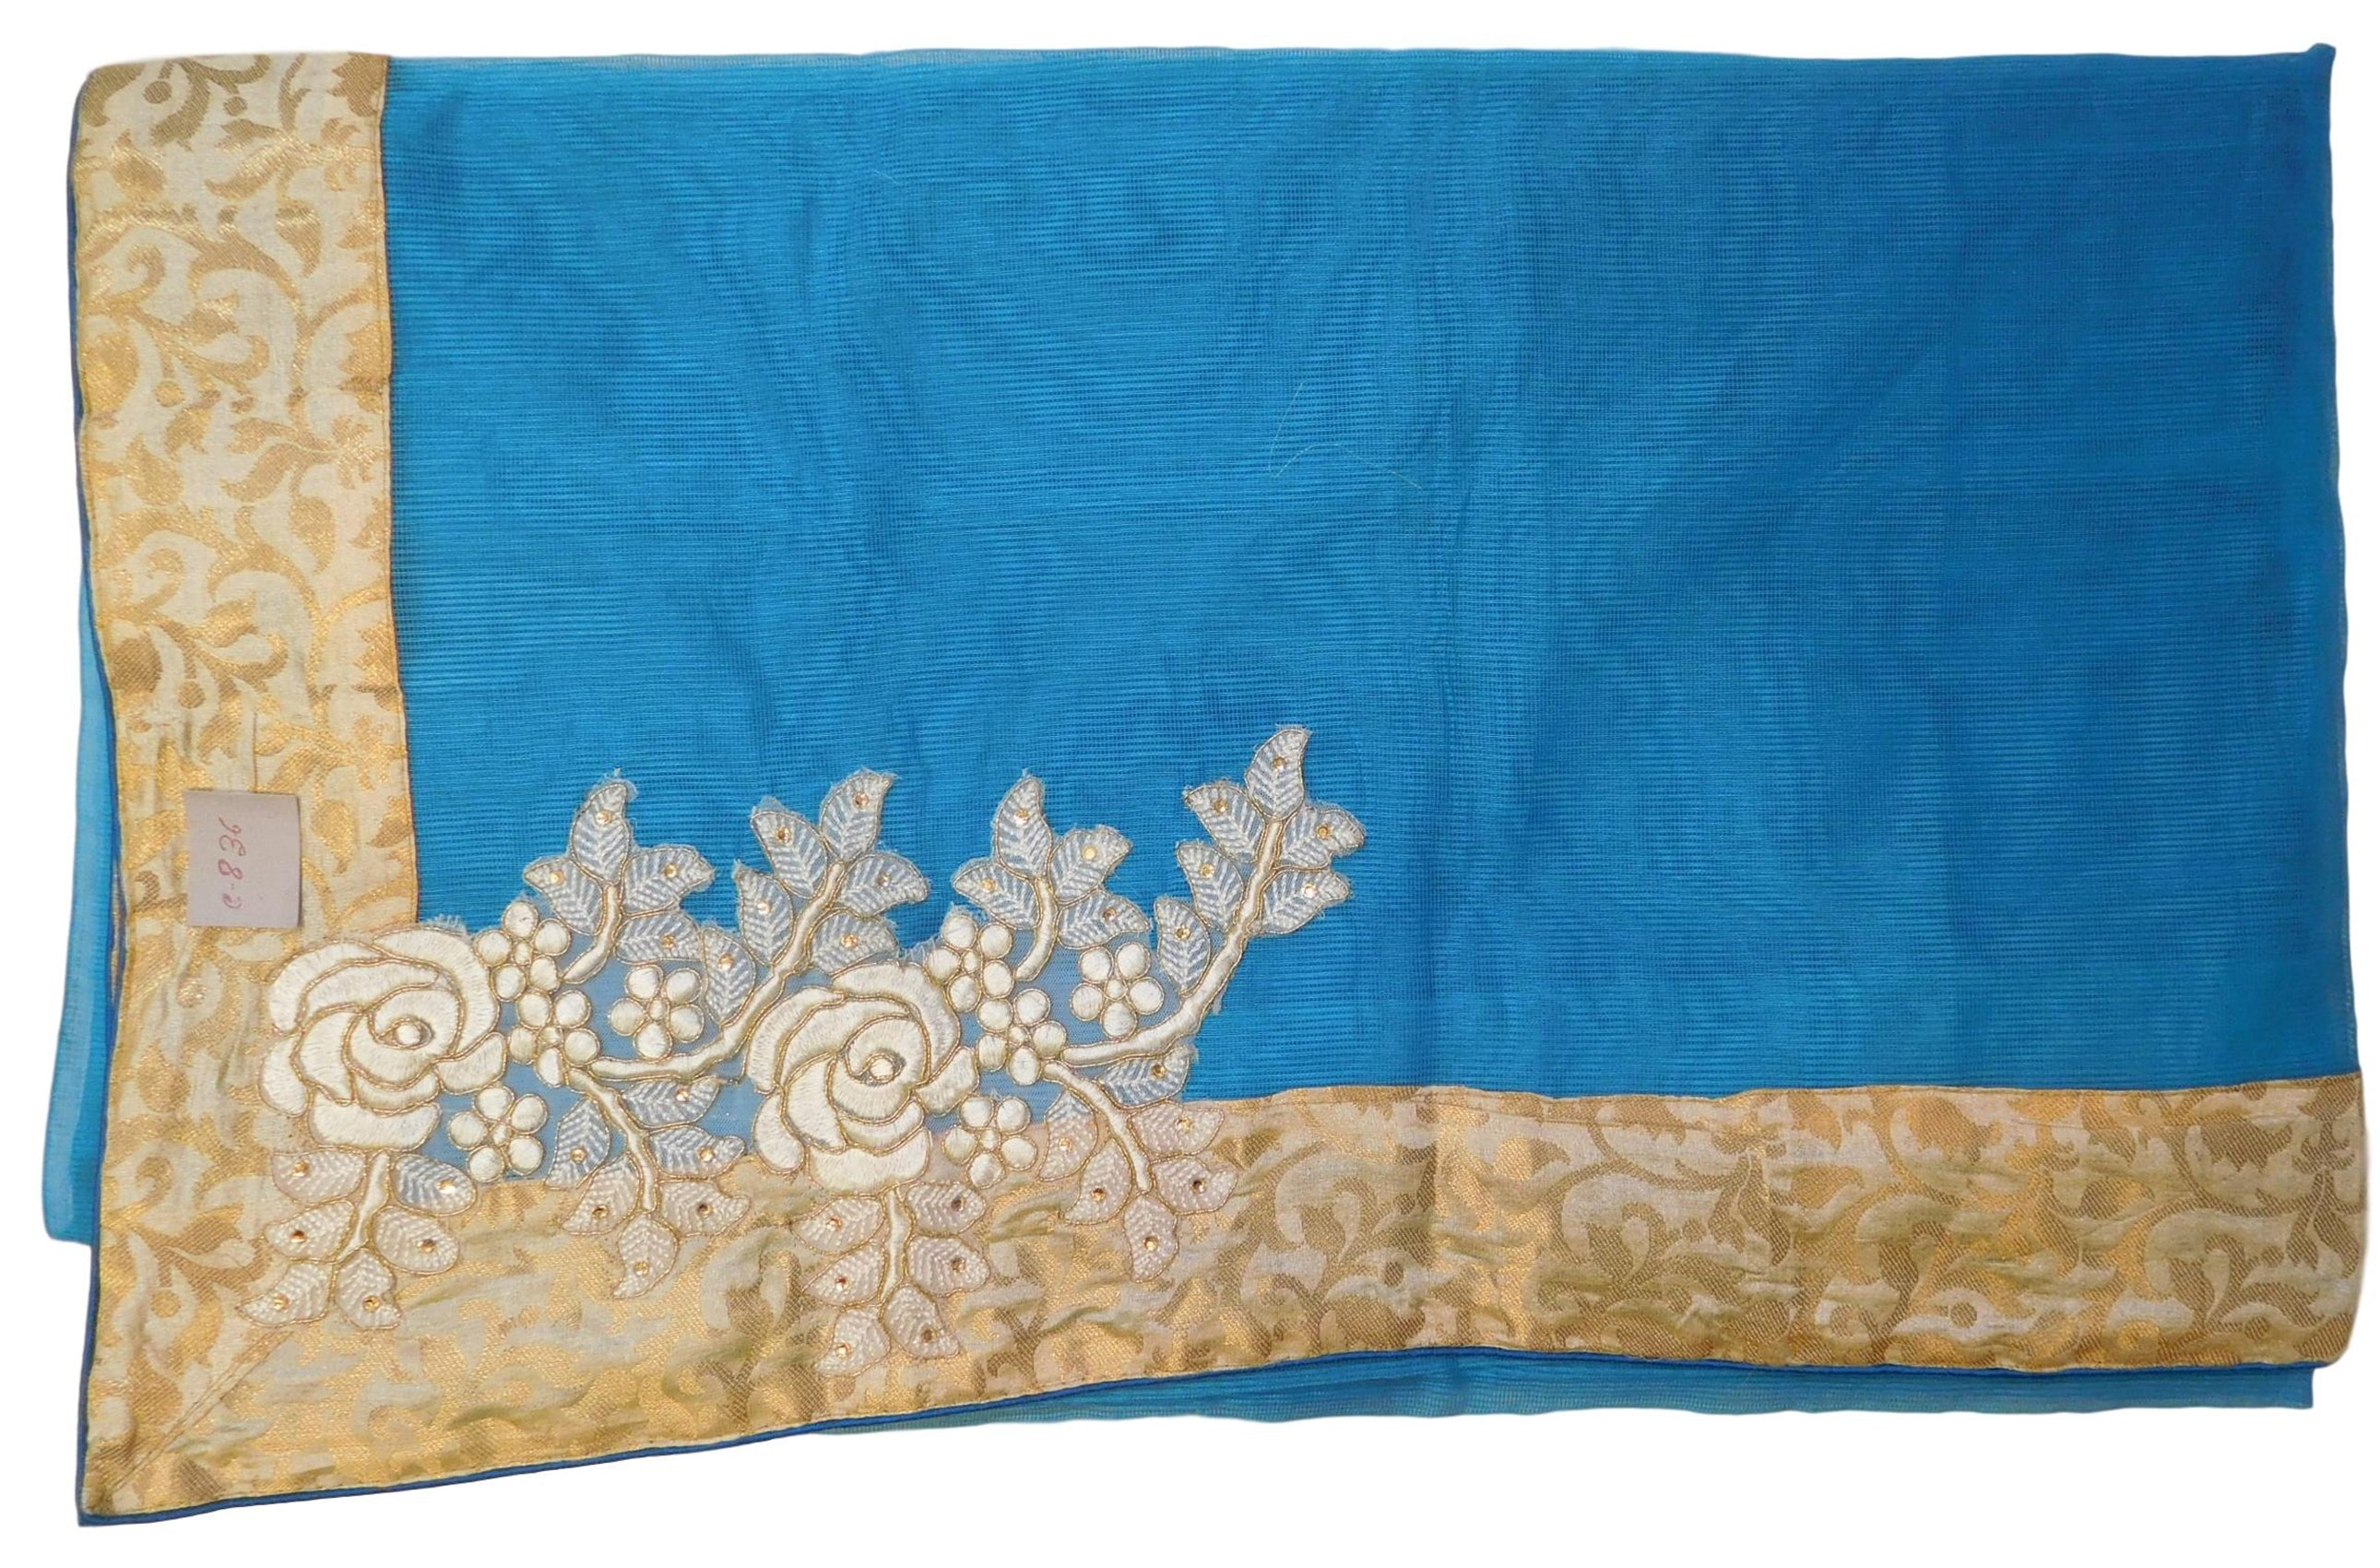 Blue Designer PartyWear Pure Supernet (Cotton) Thread Stone Zari Work Saree Sari With Beige Border